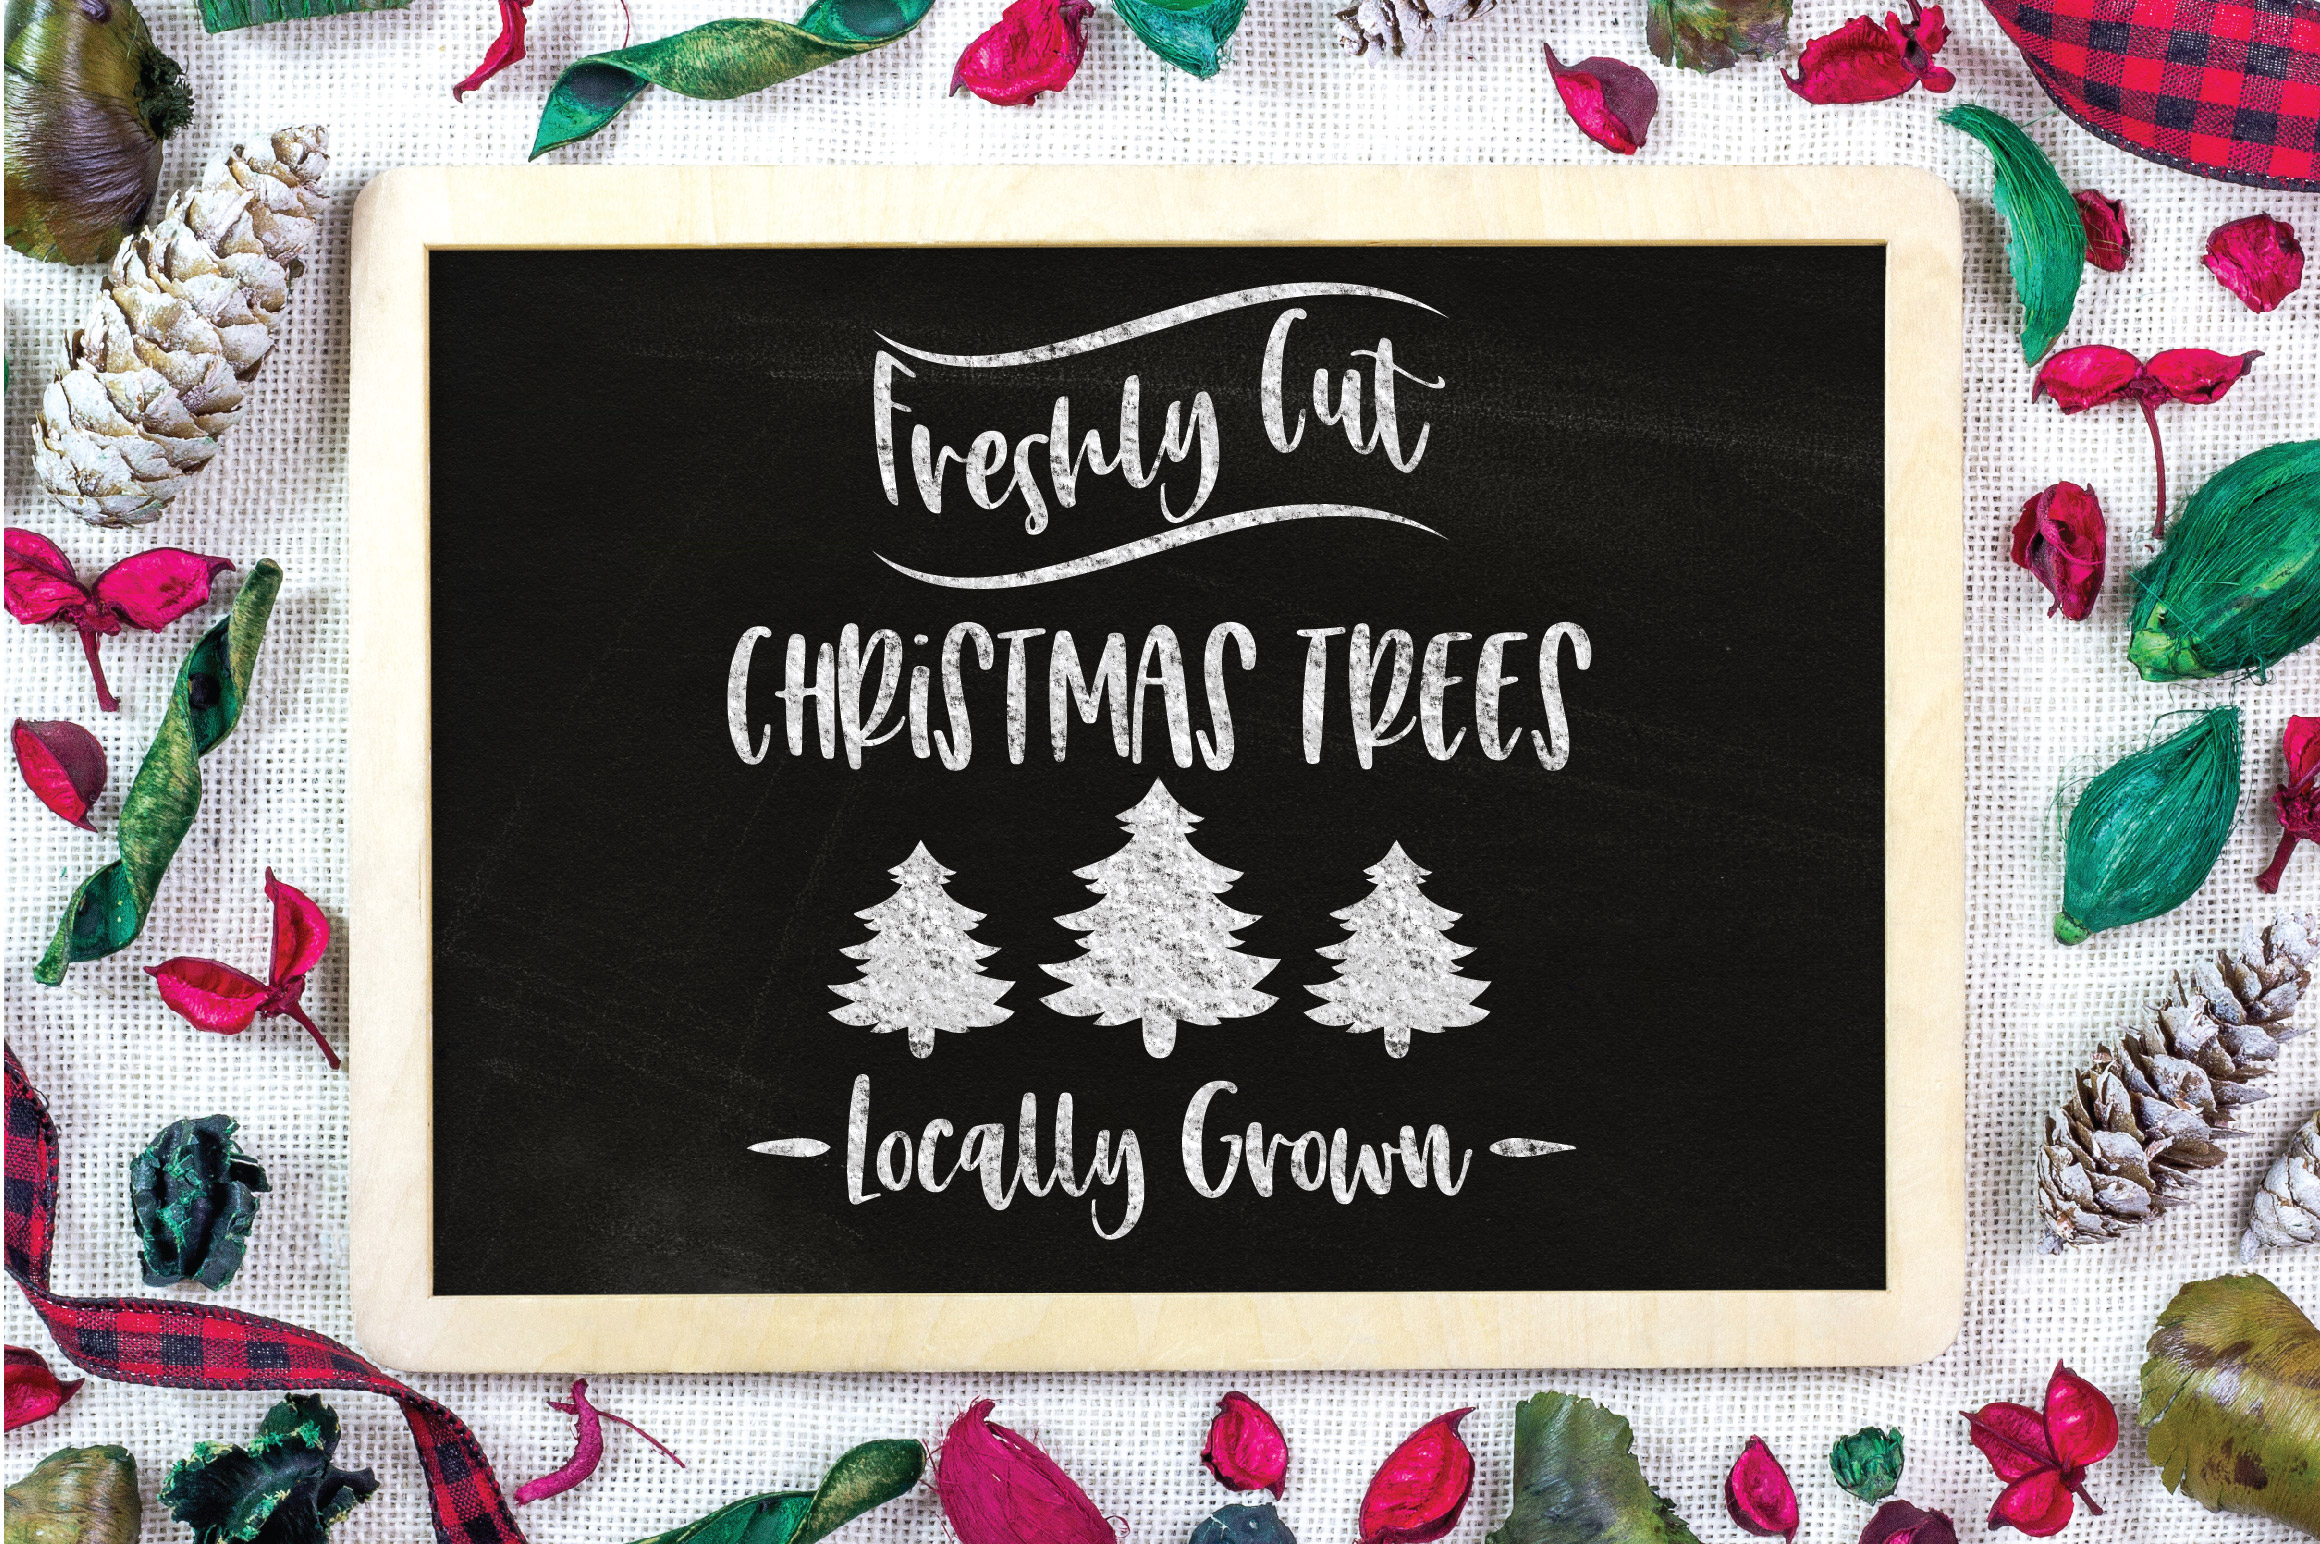 Christmas SVG Cut File - Freshly Cut Christmas Trees SVG DXF example image 3